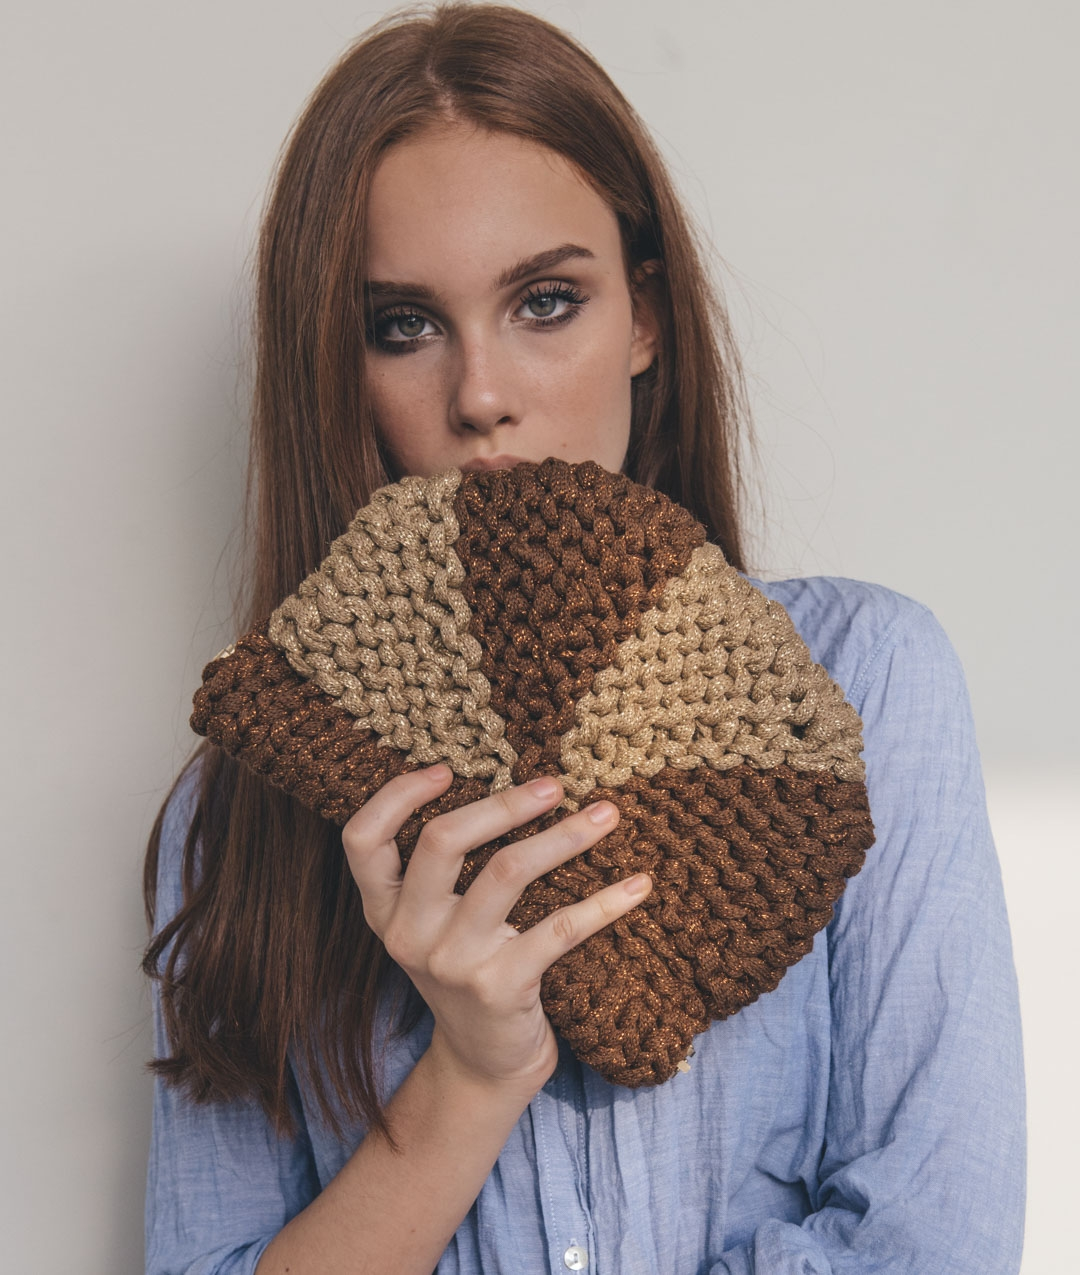 Bags - Wool - BROWN SUGAR CLUTCH - 1